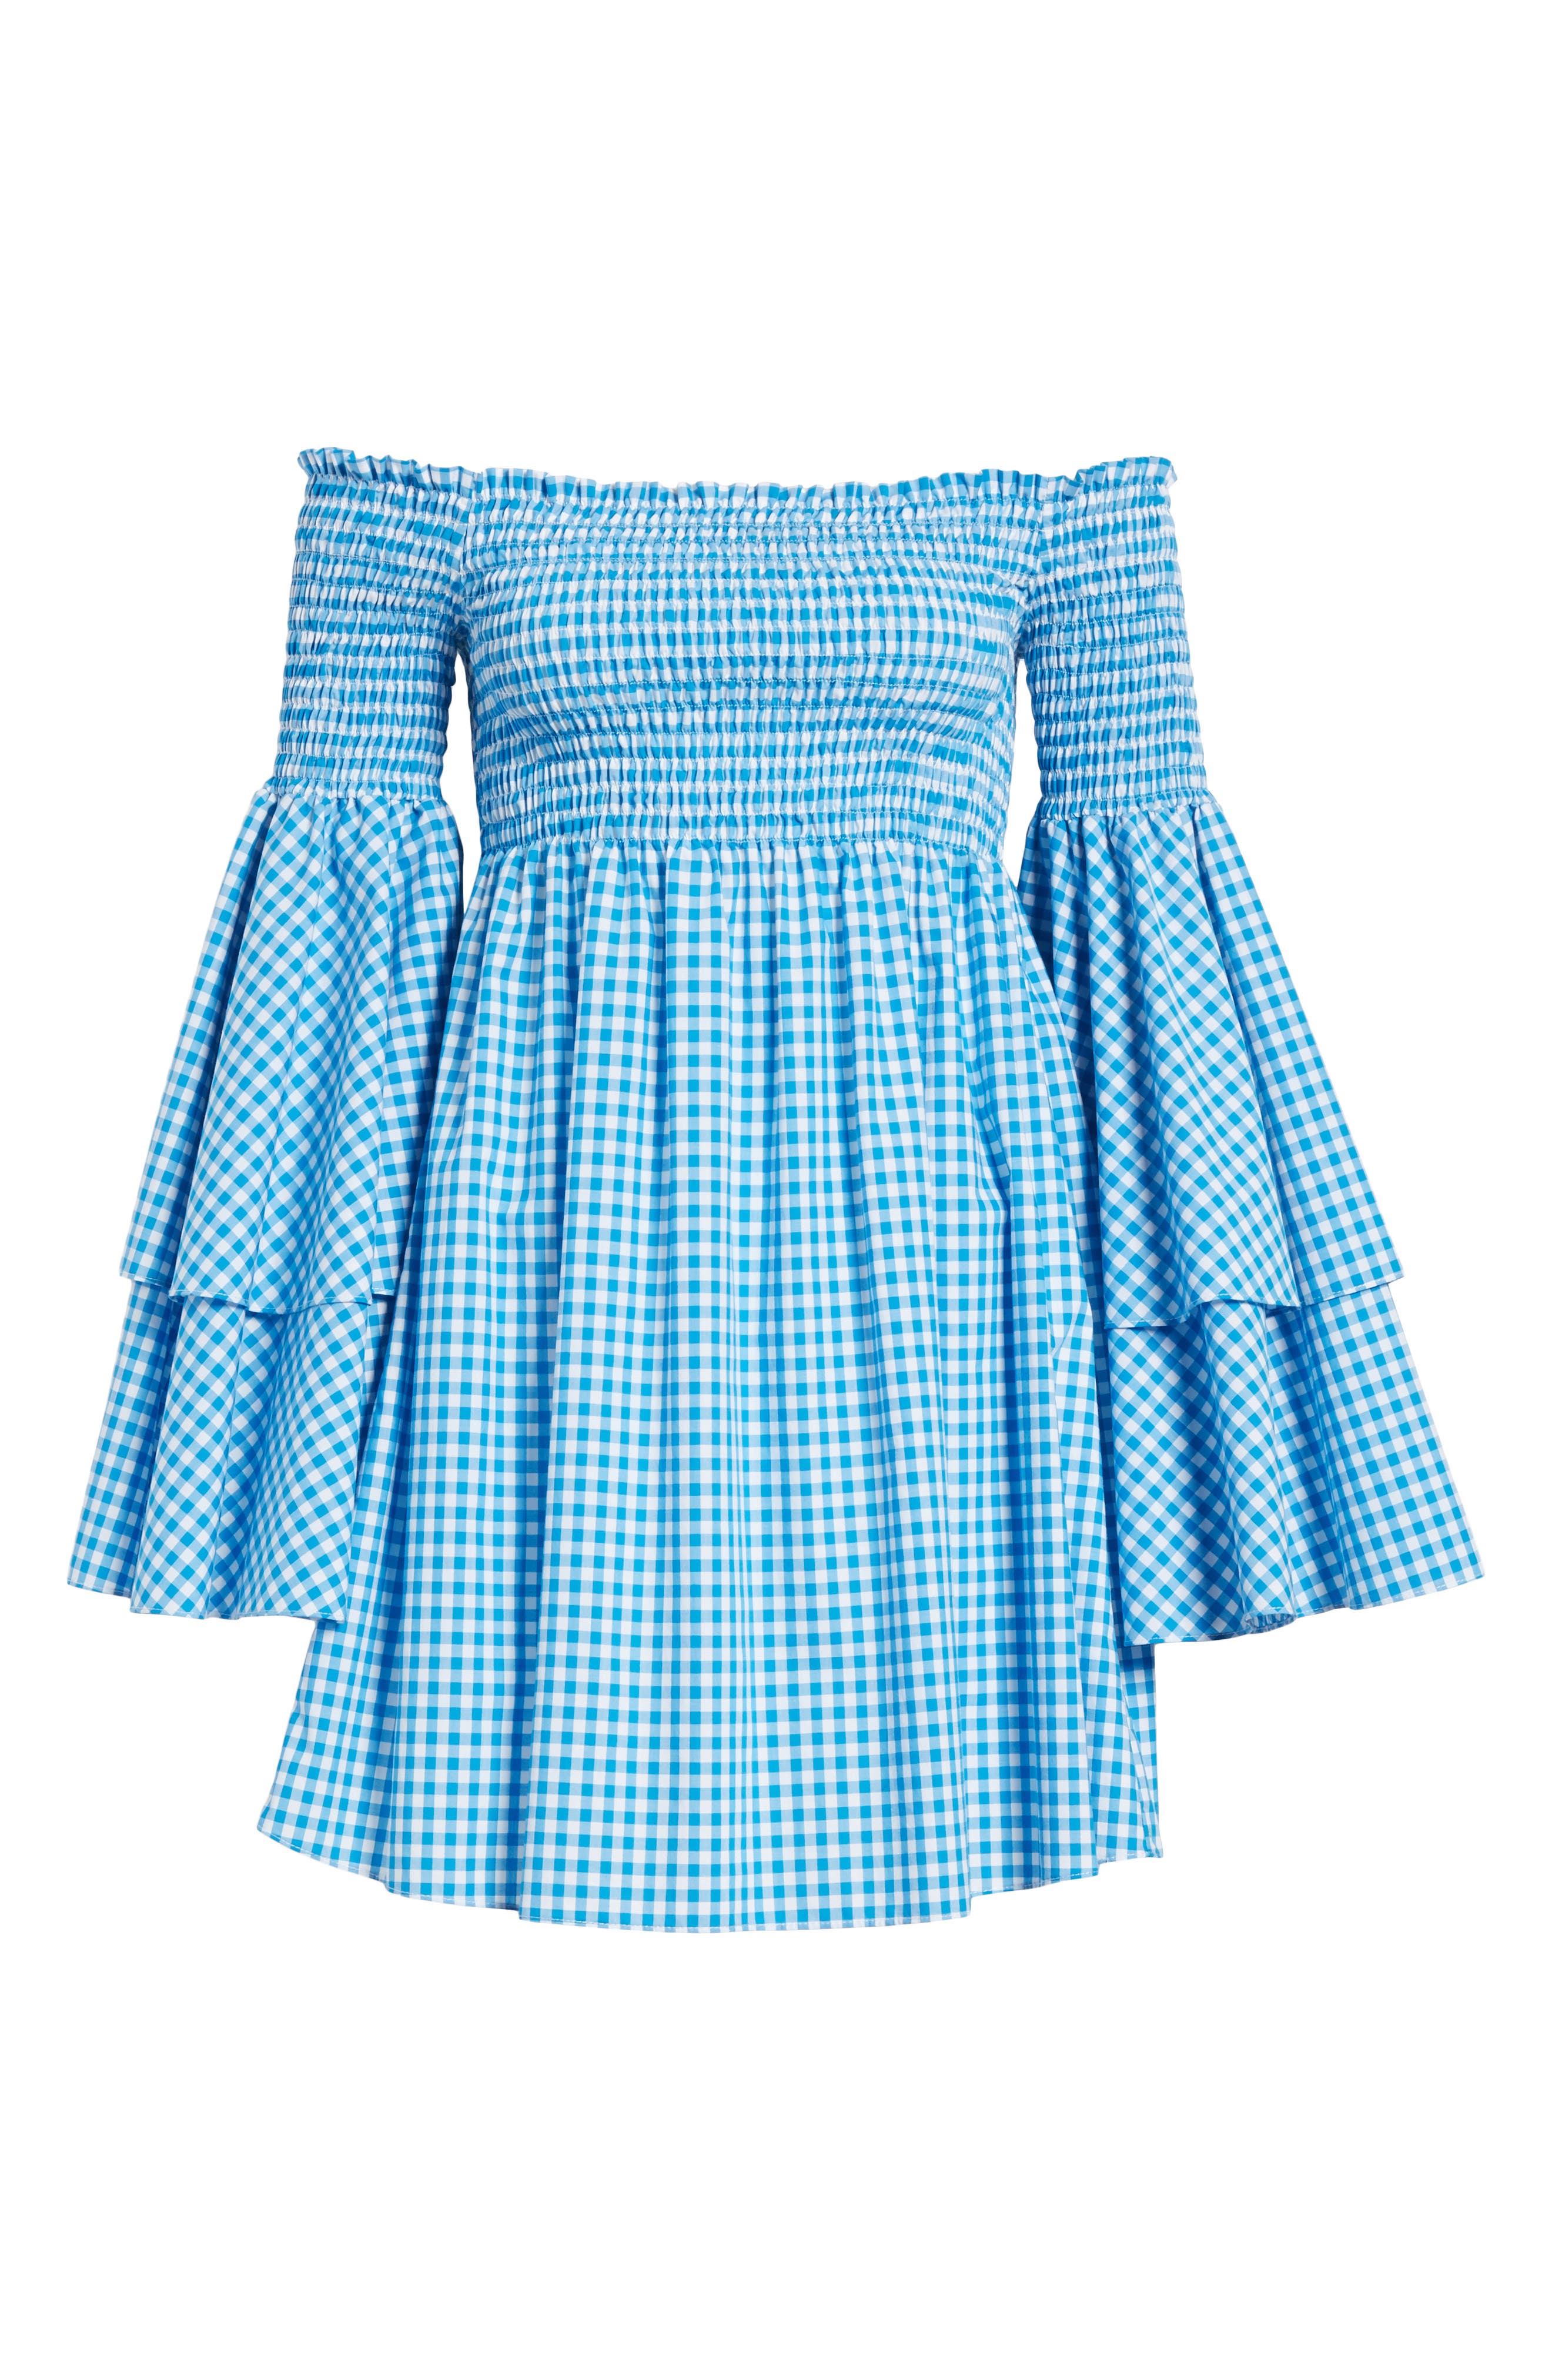 Appolonia Gingham Off the Shoulder Dress,                             Alternate thumbnail 6, color,                             451